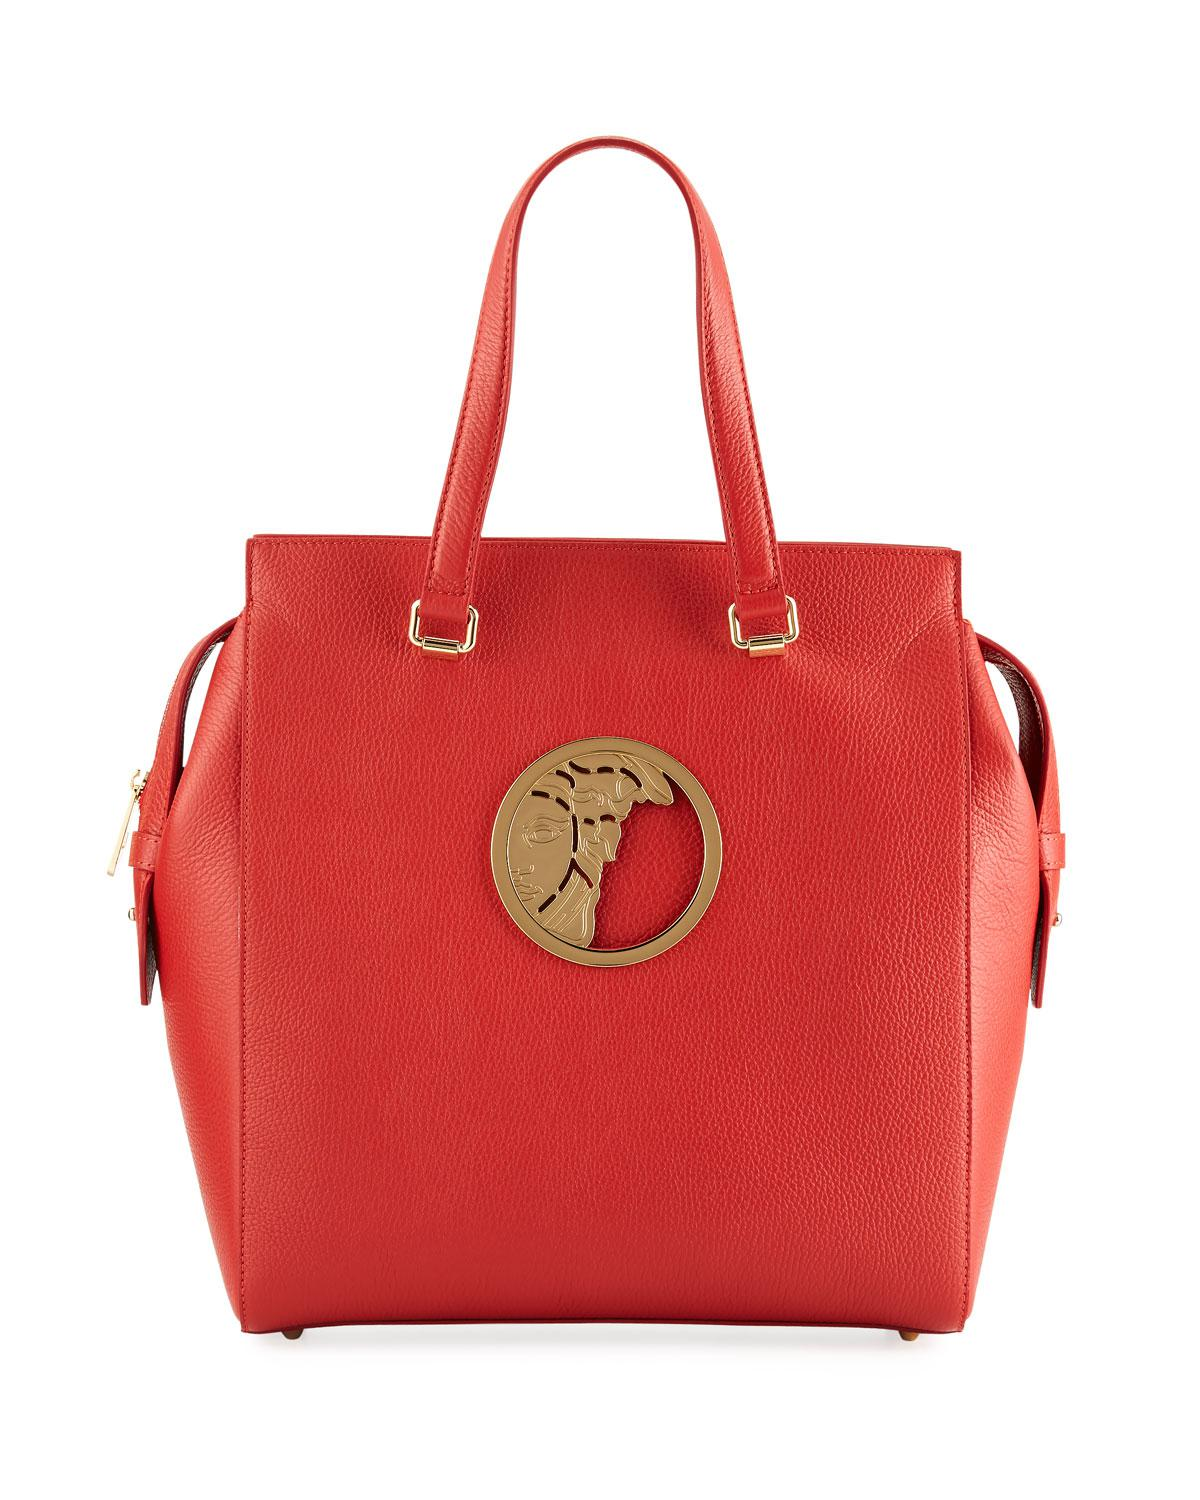 685af3f5f24c Lyst - Versace Pebbled Leather Tote Bag Red in Red